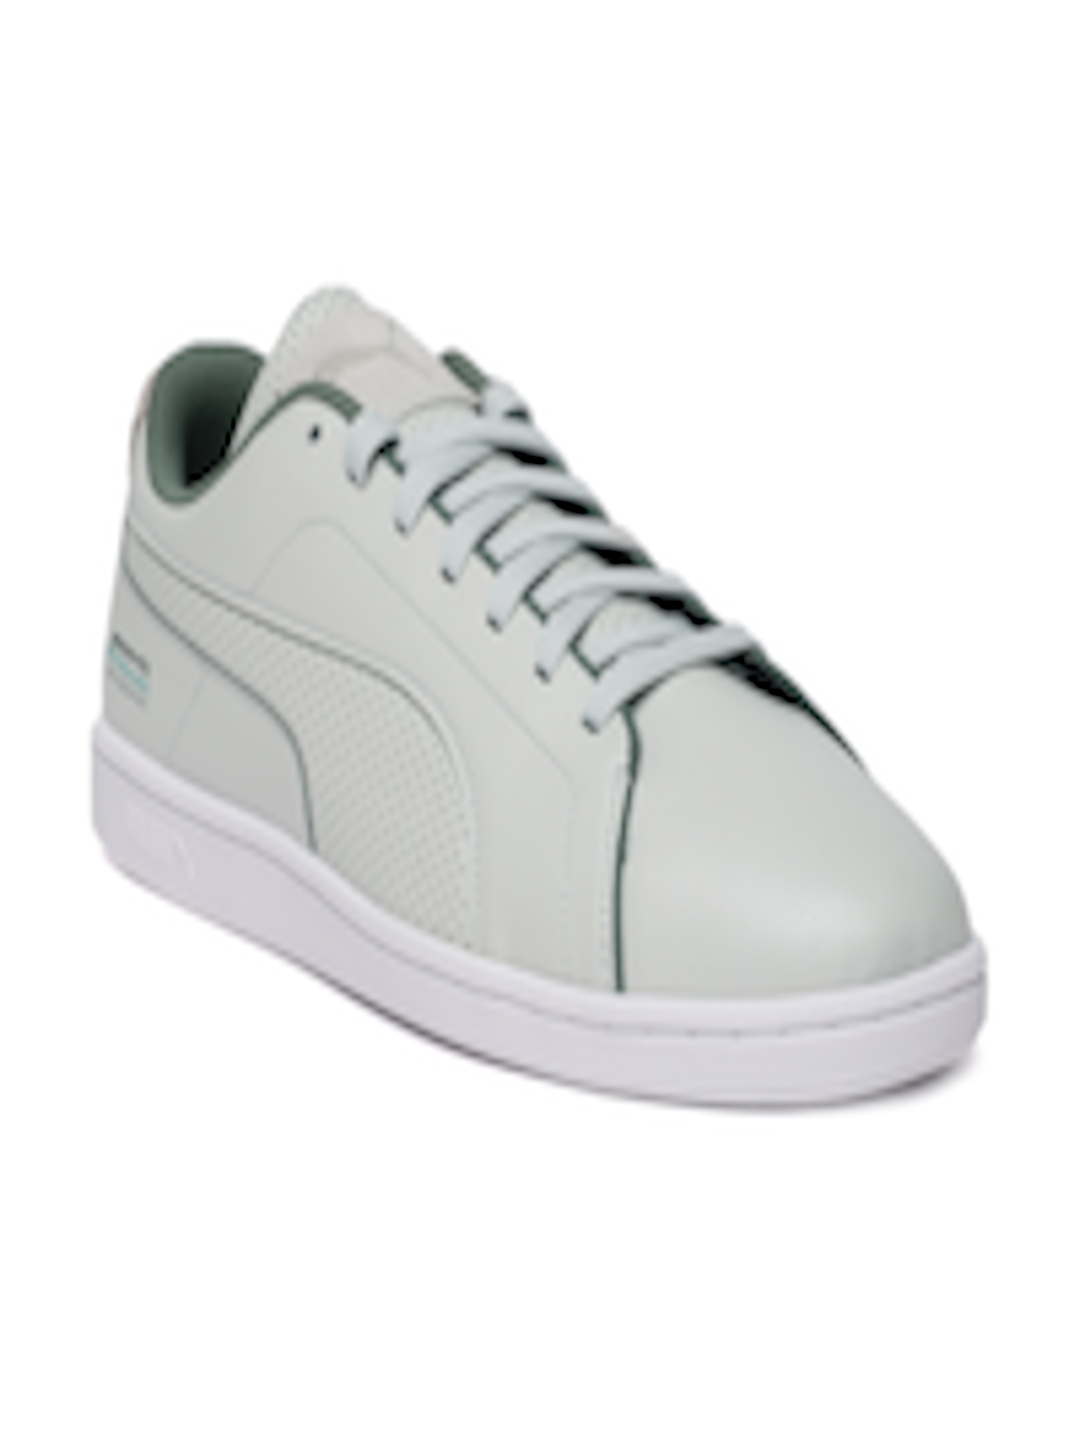 0494a61f5a73 Buy Puma Men Grey Leather MAPM Court Perf Sneakers - Casual Shoes for Men  6815965